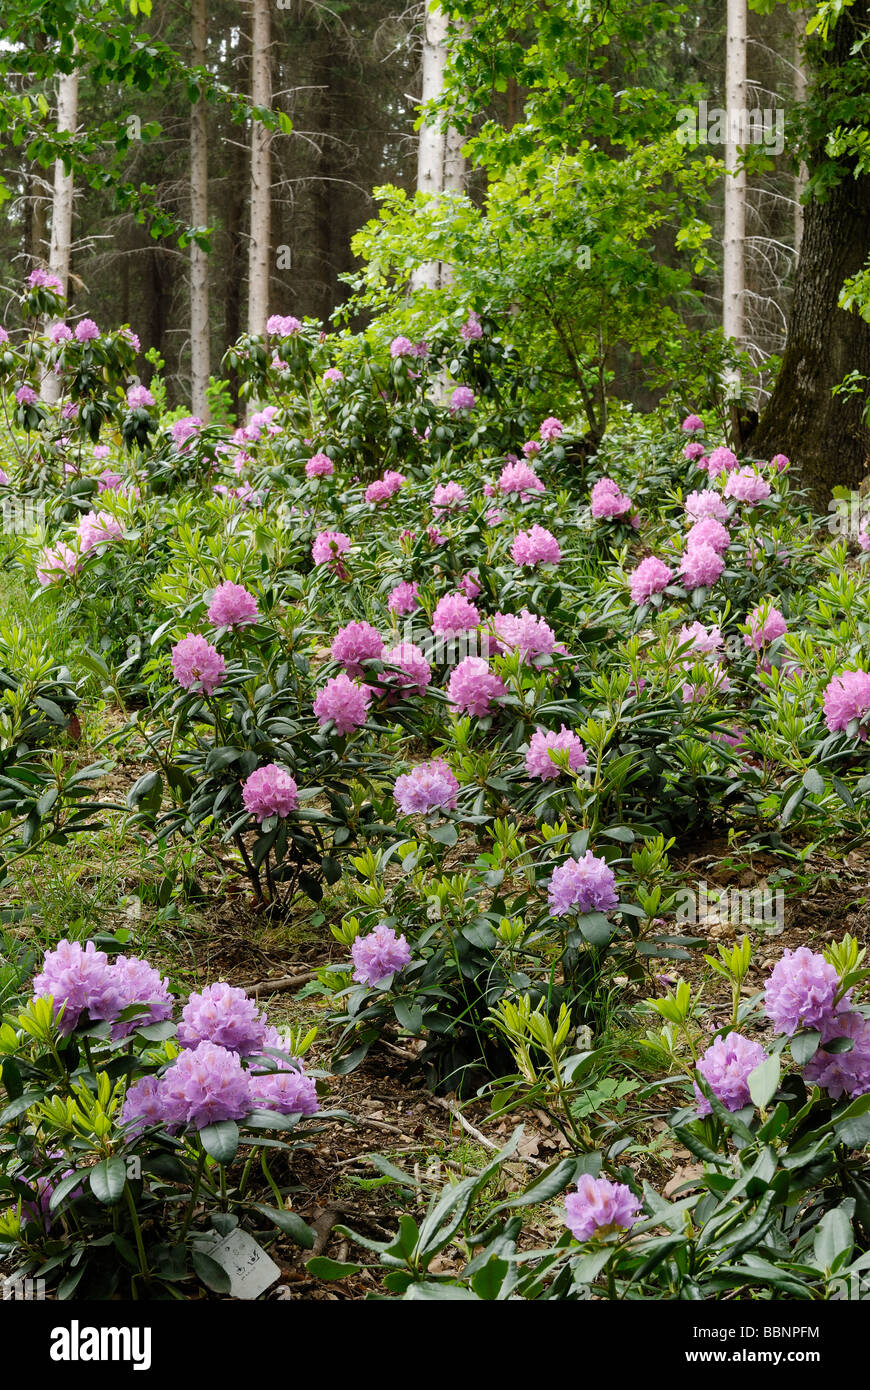 Rhododendron in a forest garden - Stock Image